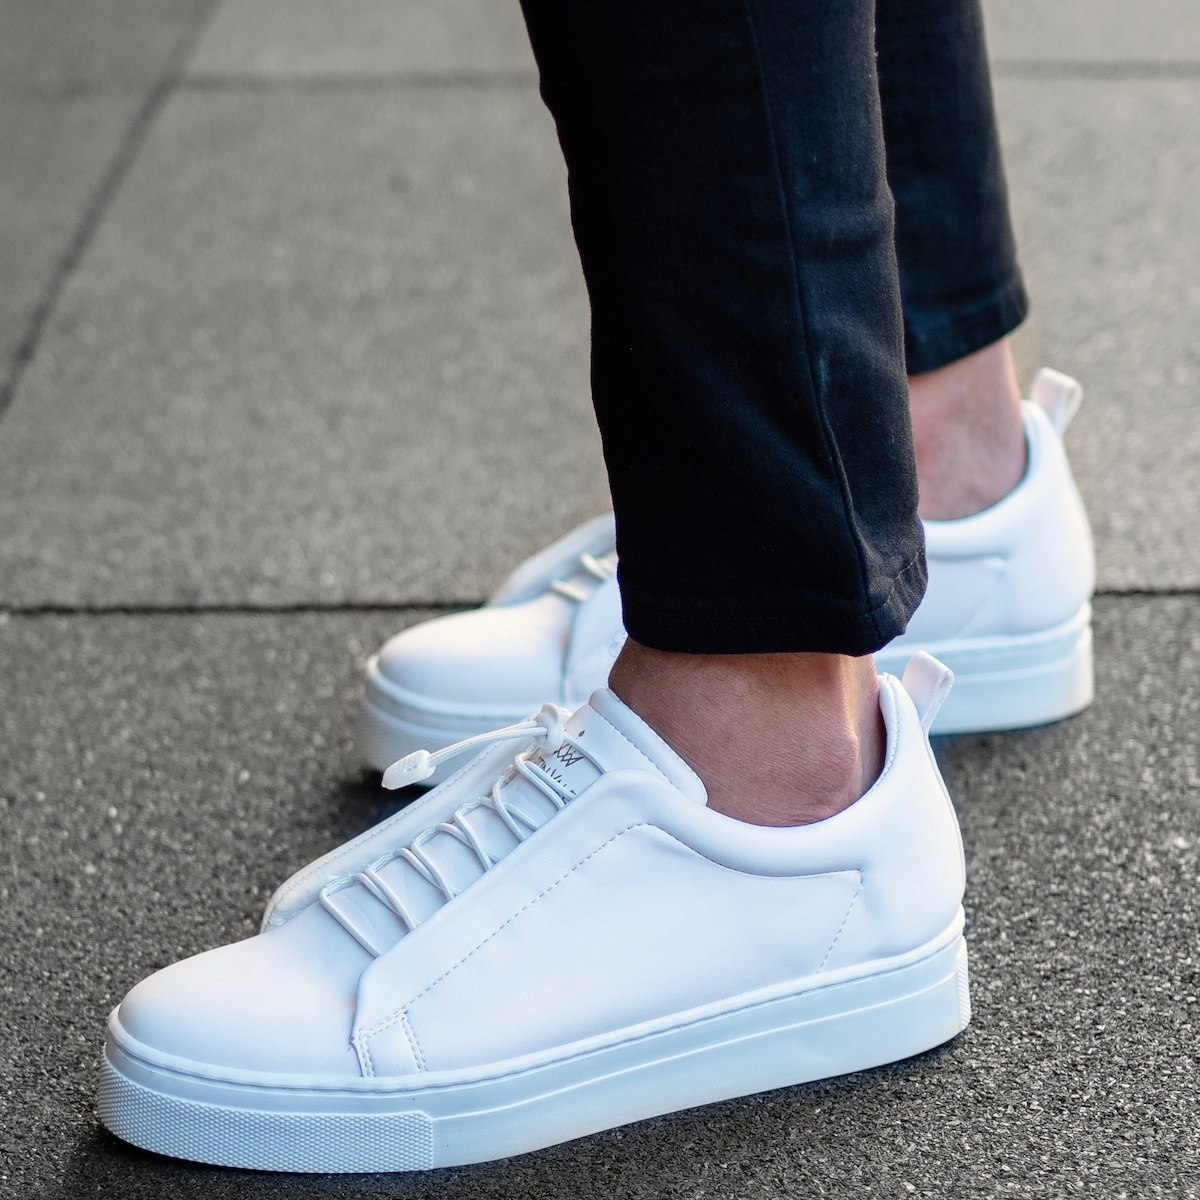 MV Dominant Sneakers in White